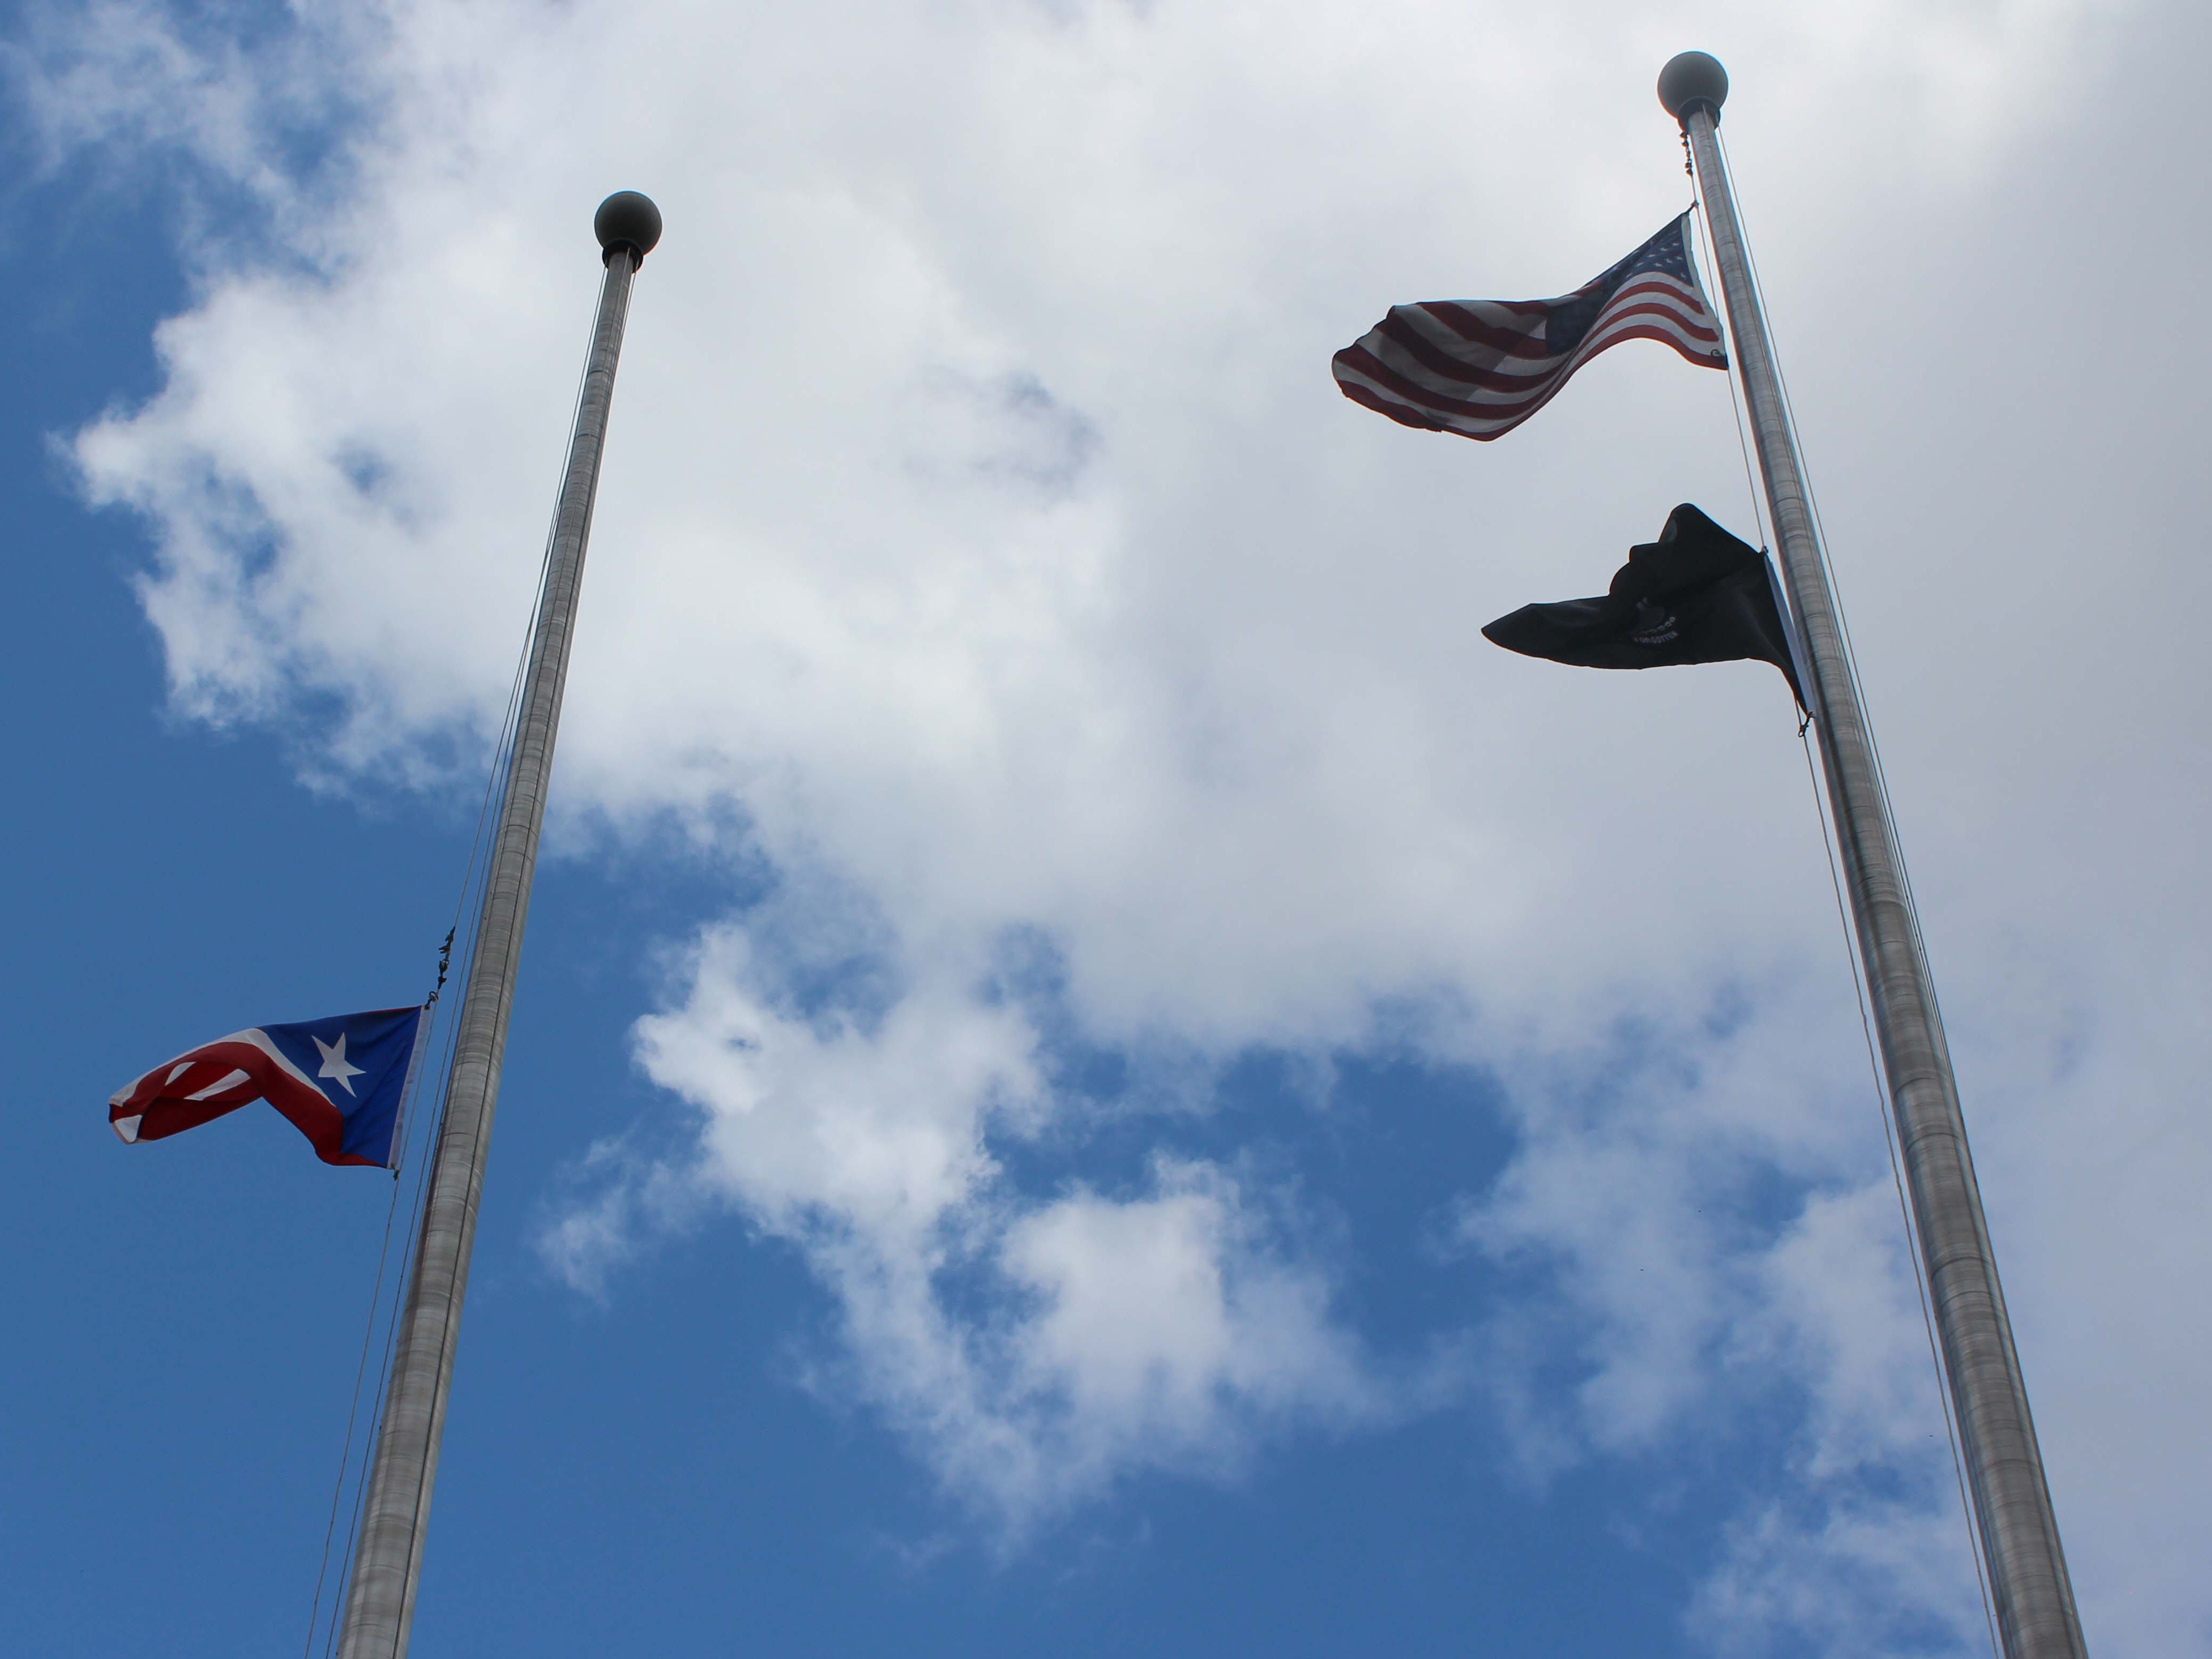 The Puerto Rican flag flew proudly alongside the American flag outside of Vineland City Hall on Sunday, July 22, 2018.